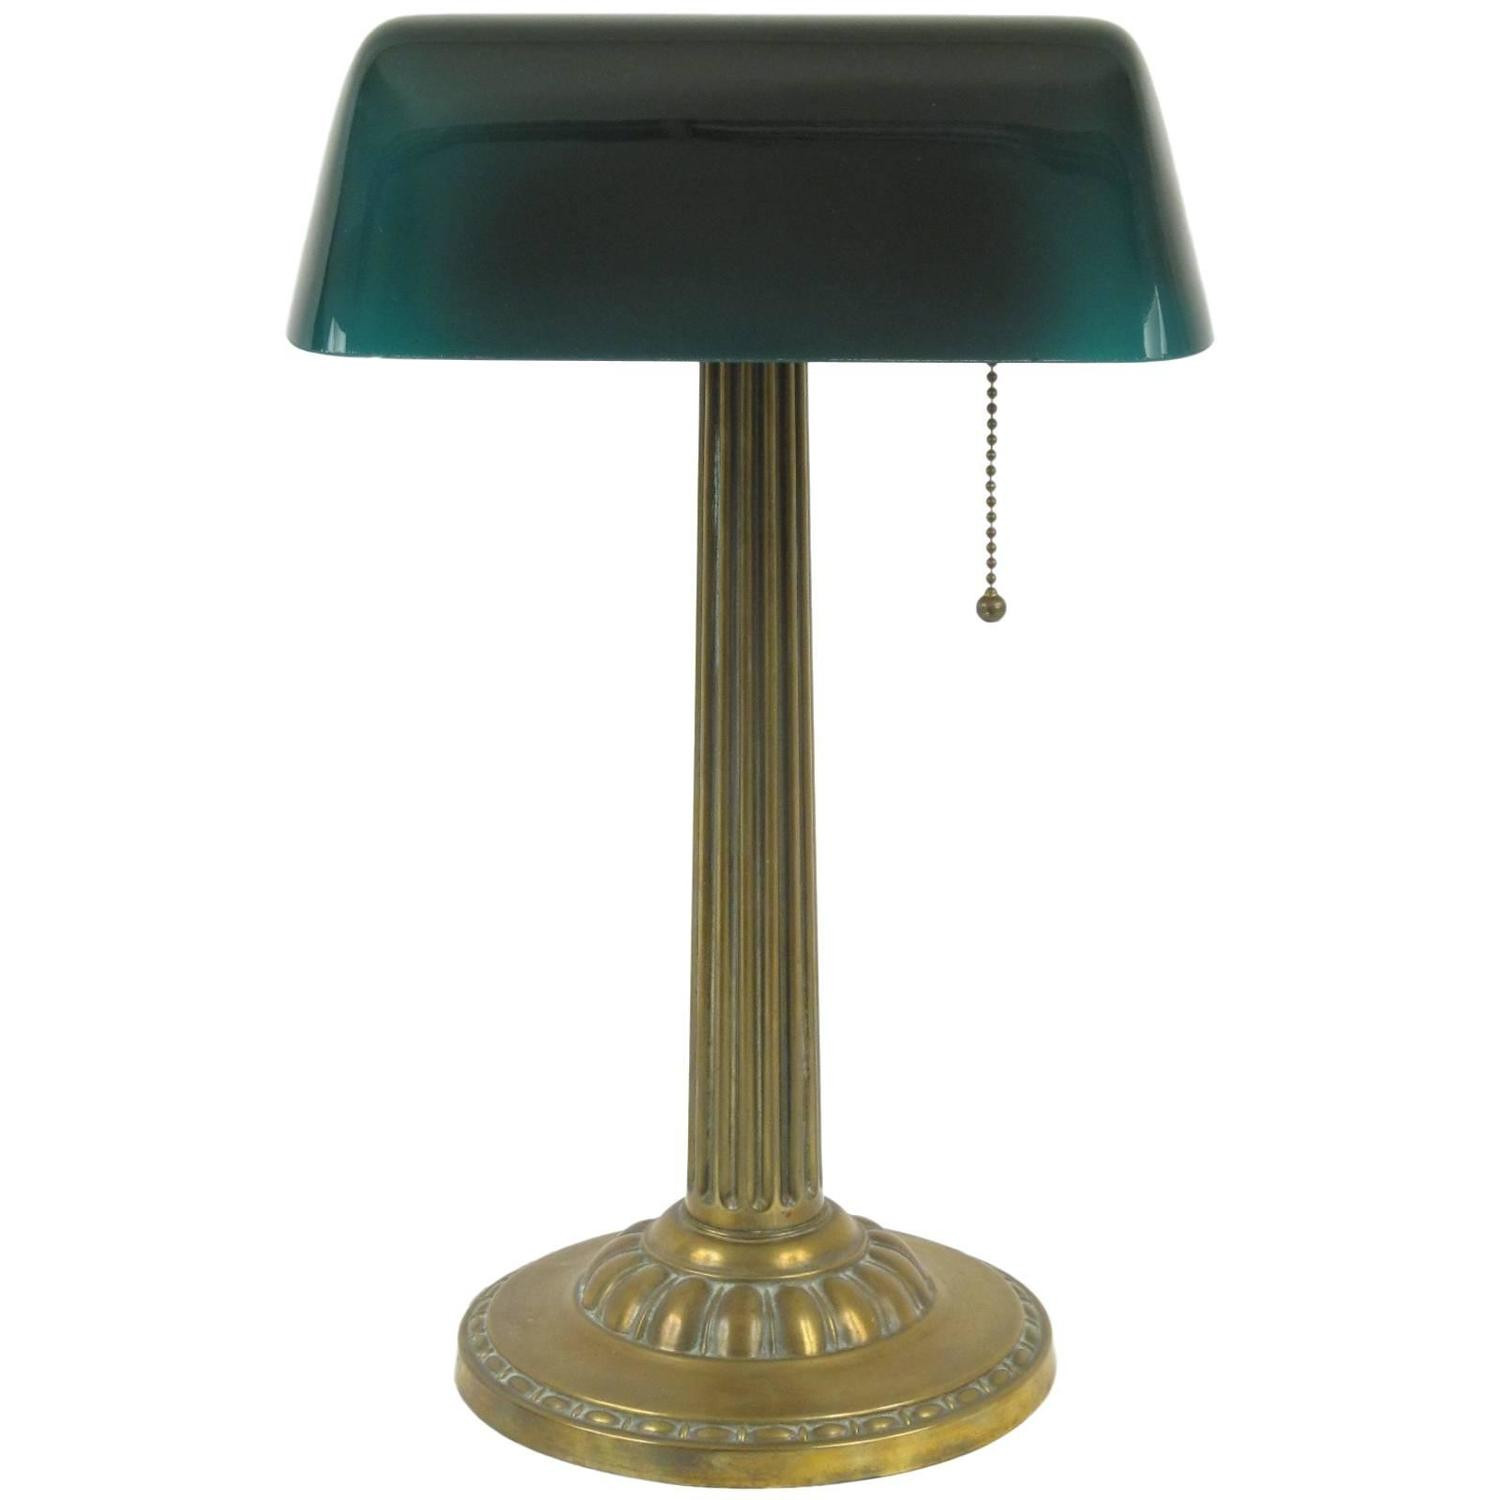 """Best ideas about Bankers Desk Lamp . Save or Pin Amronlite Green Glass Shade """"Bankers"""" Desk Lamp at 1stdibs Now."""